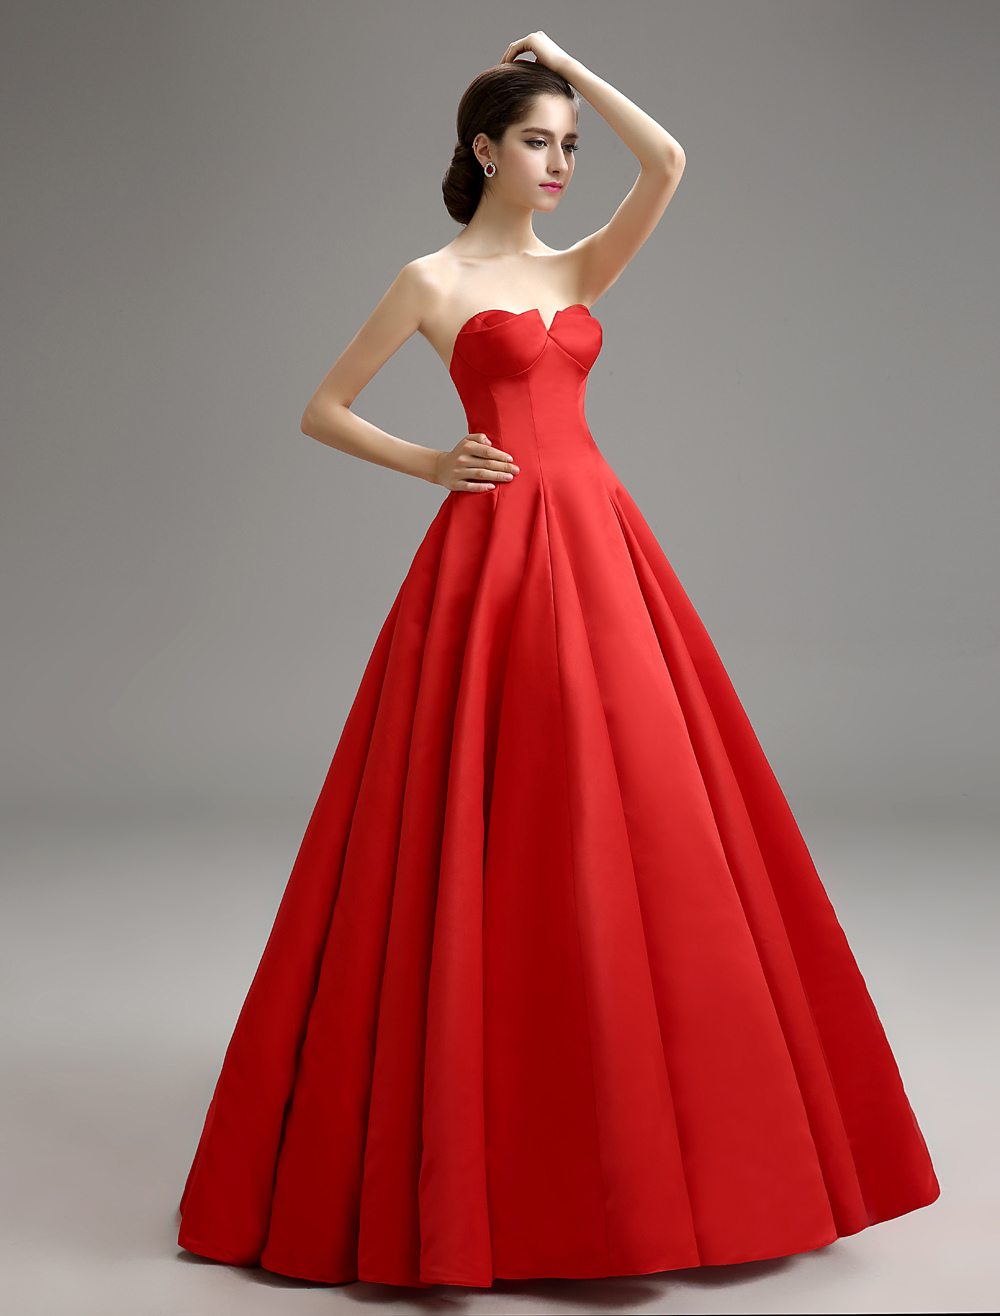 Red Vintage Strapless Pleated Ball Gown With Satin  Milanoo